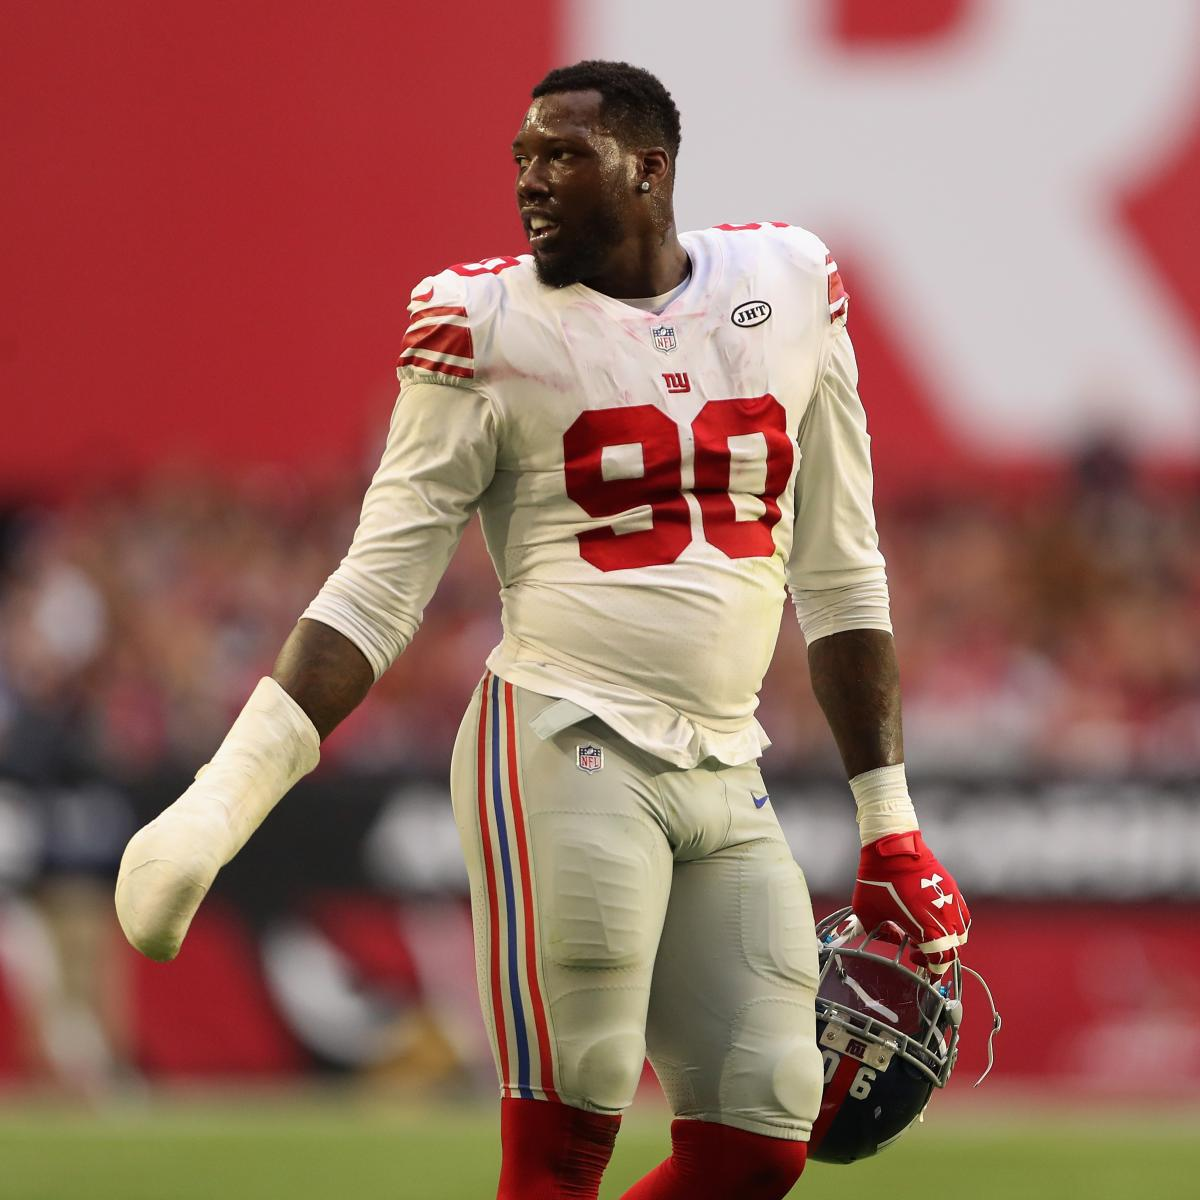 Jason Pierre Paul Pictures: Jason Pierre-Paul Trade Ends Another Giants Era, And